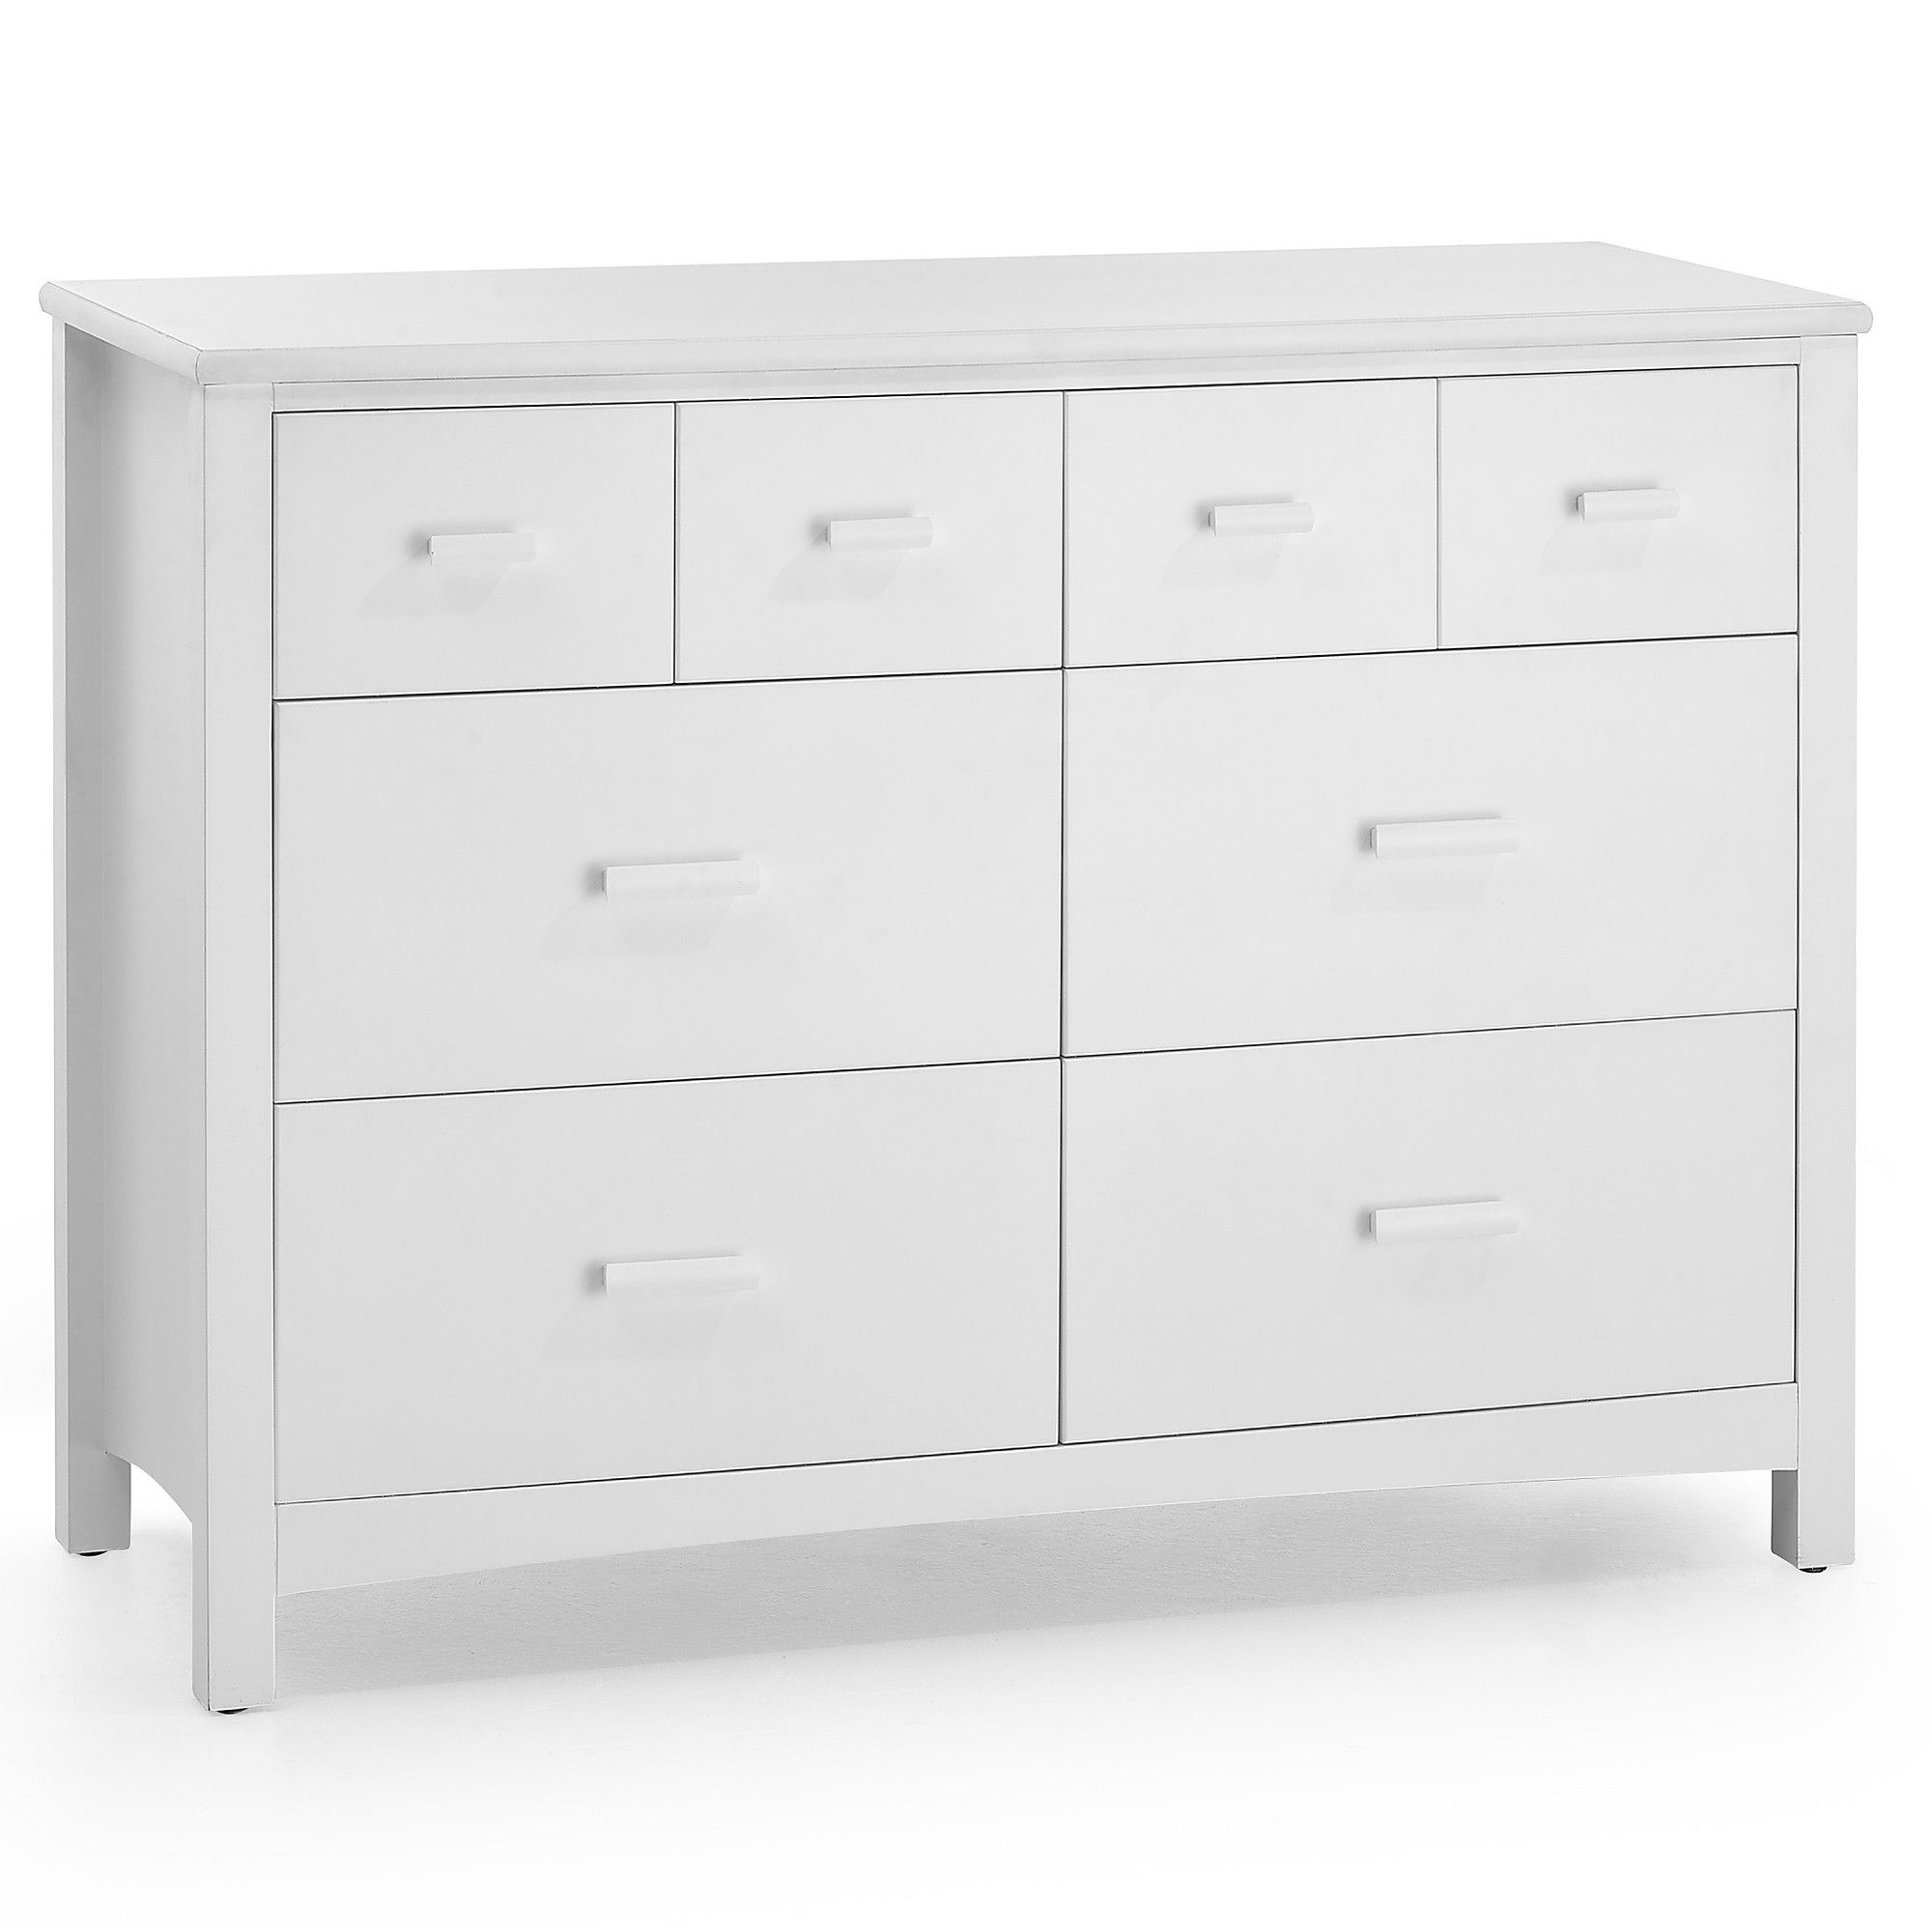 Serene Furnishings Eleanor 8 Drawer Chest - Opal White at Tesco Direct